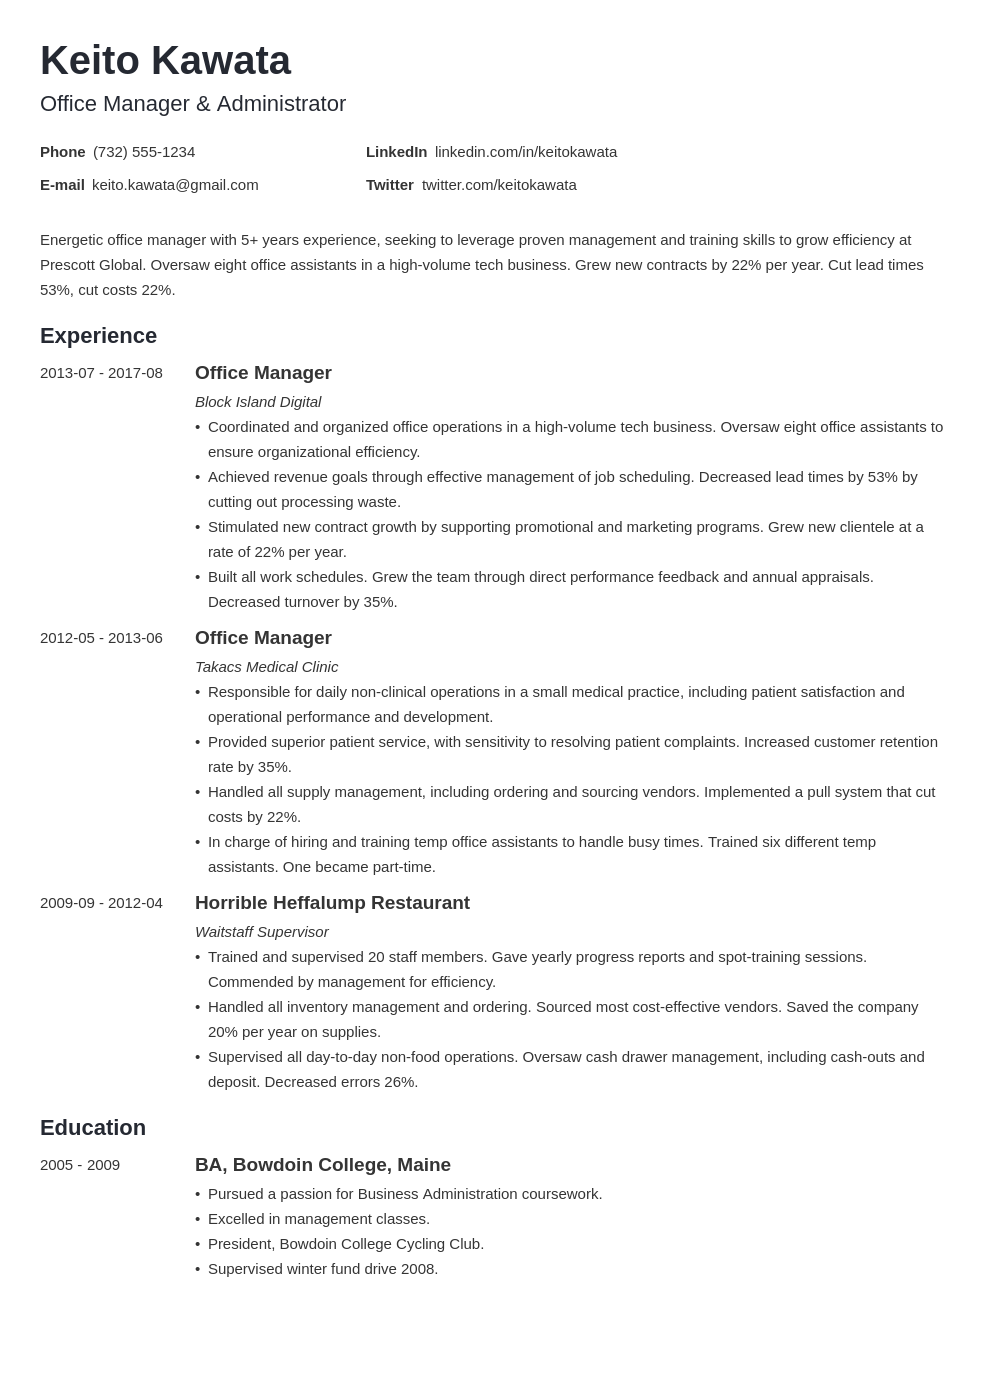 Office Manager Job Description for a Resume Examples